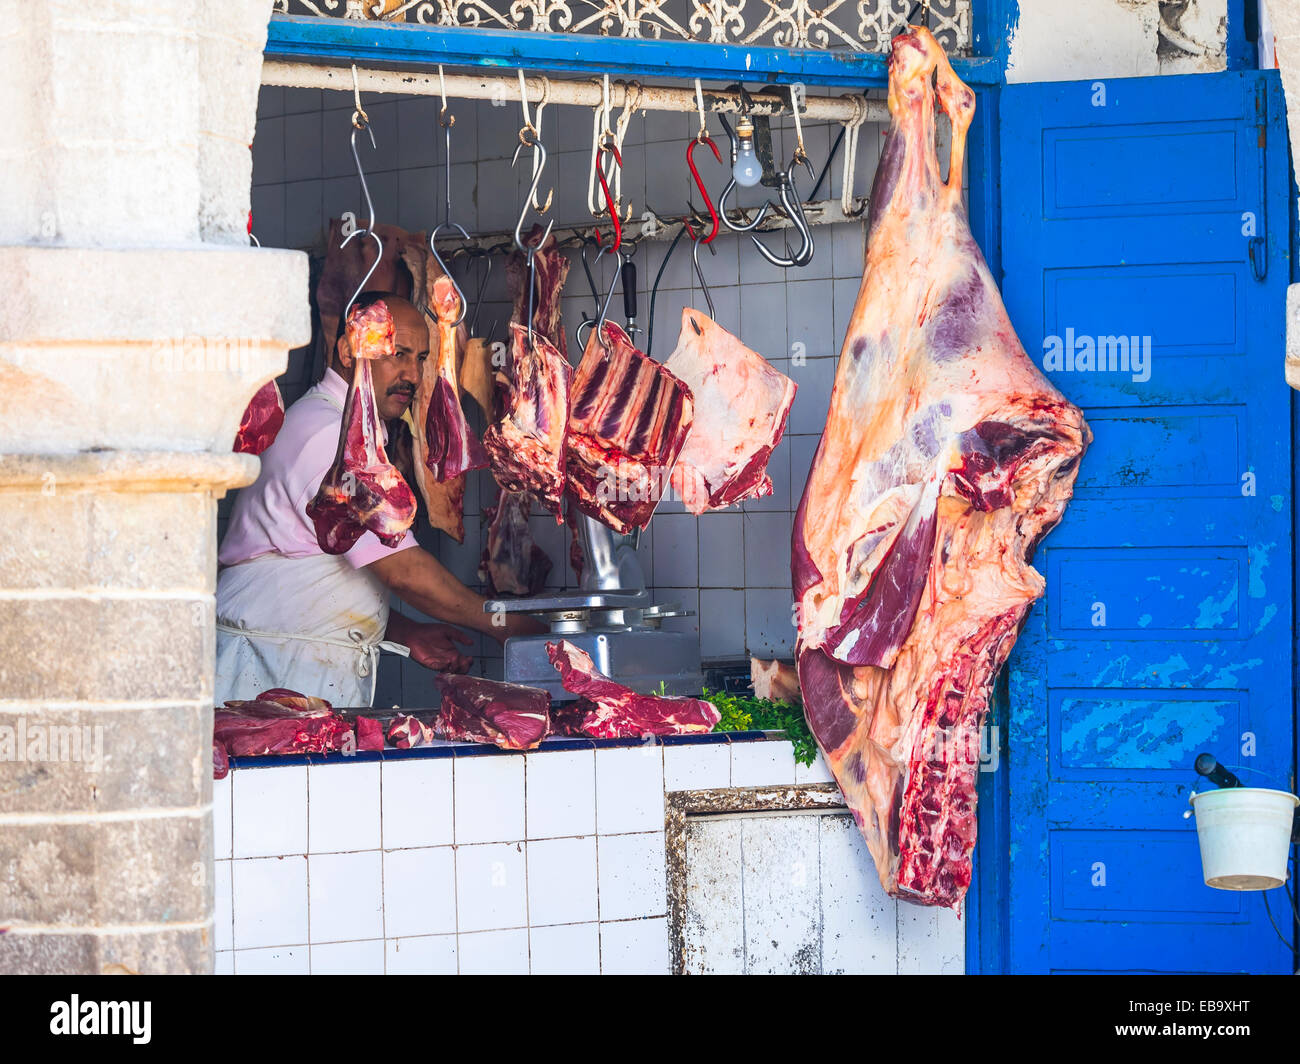 Meat seller in the Souk, Essaouira, Morocco - Stock Image